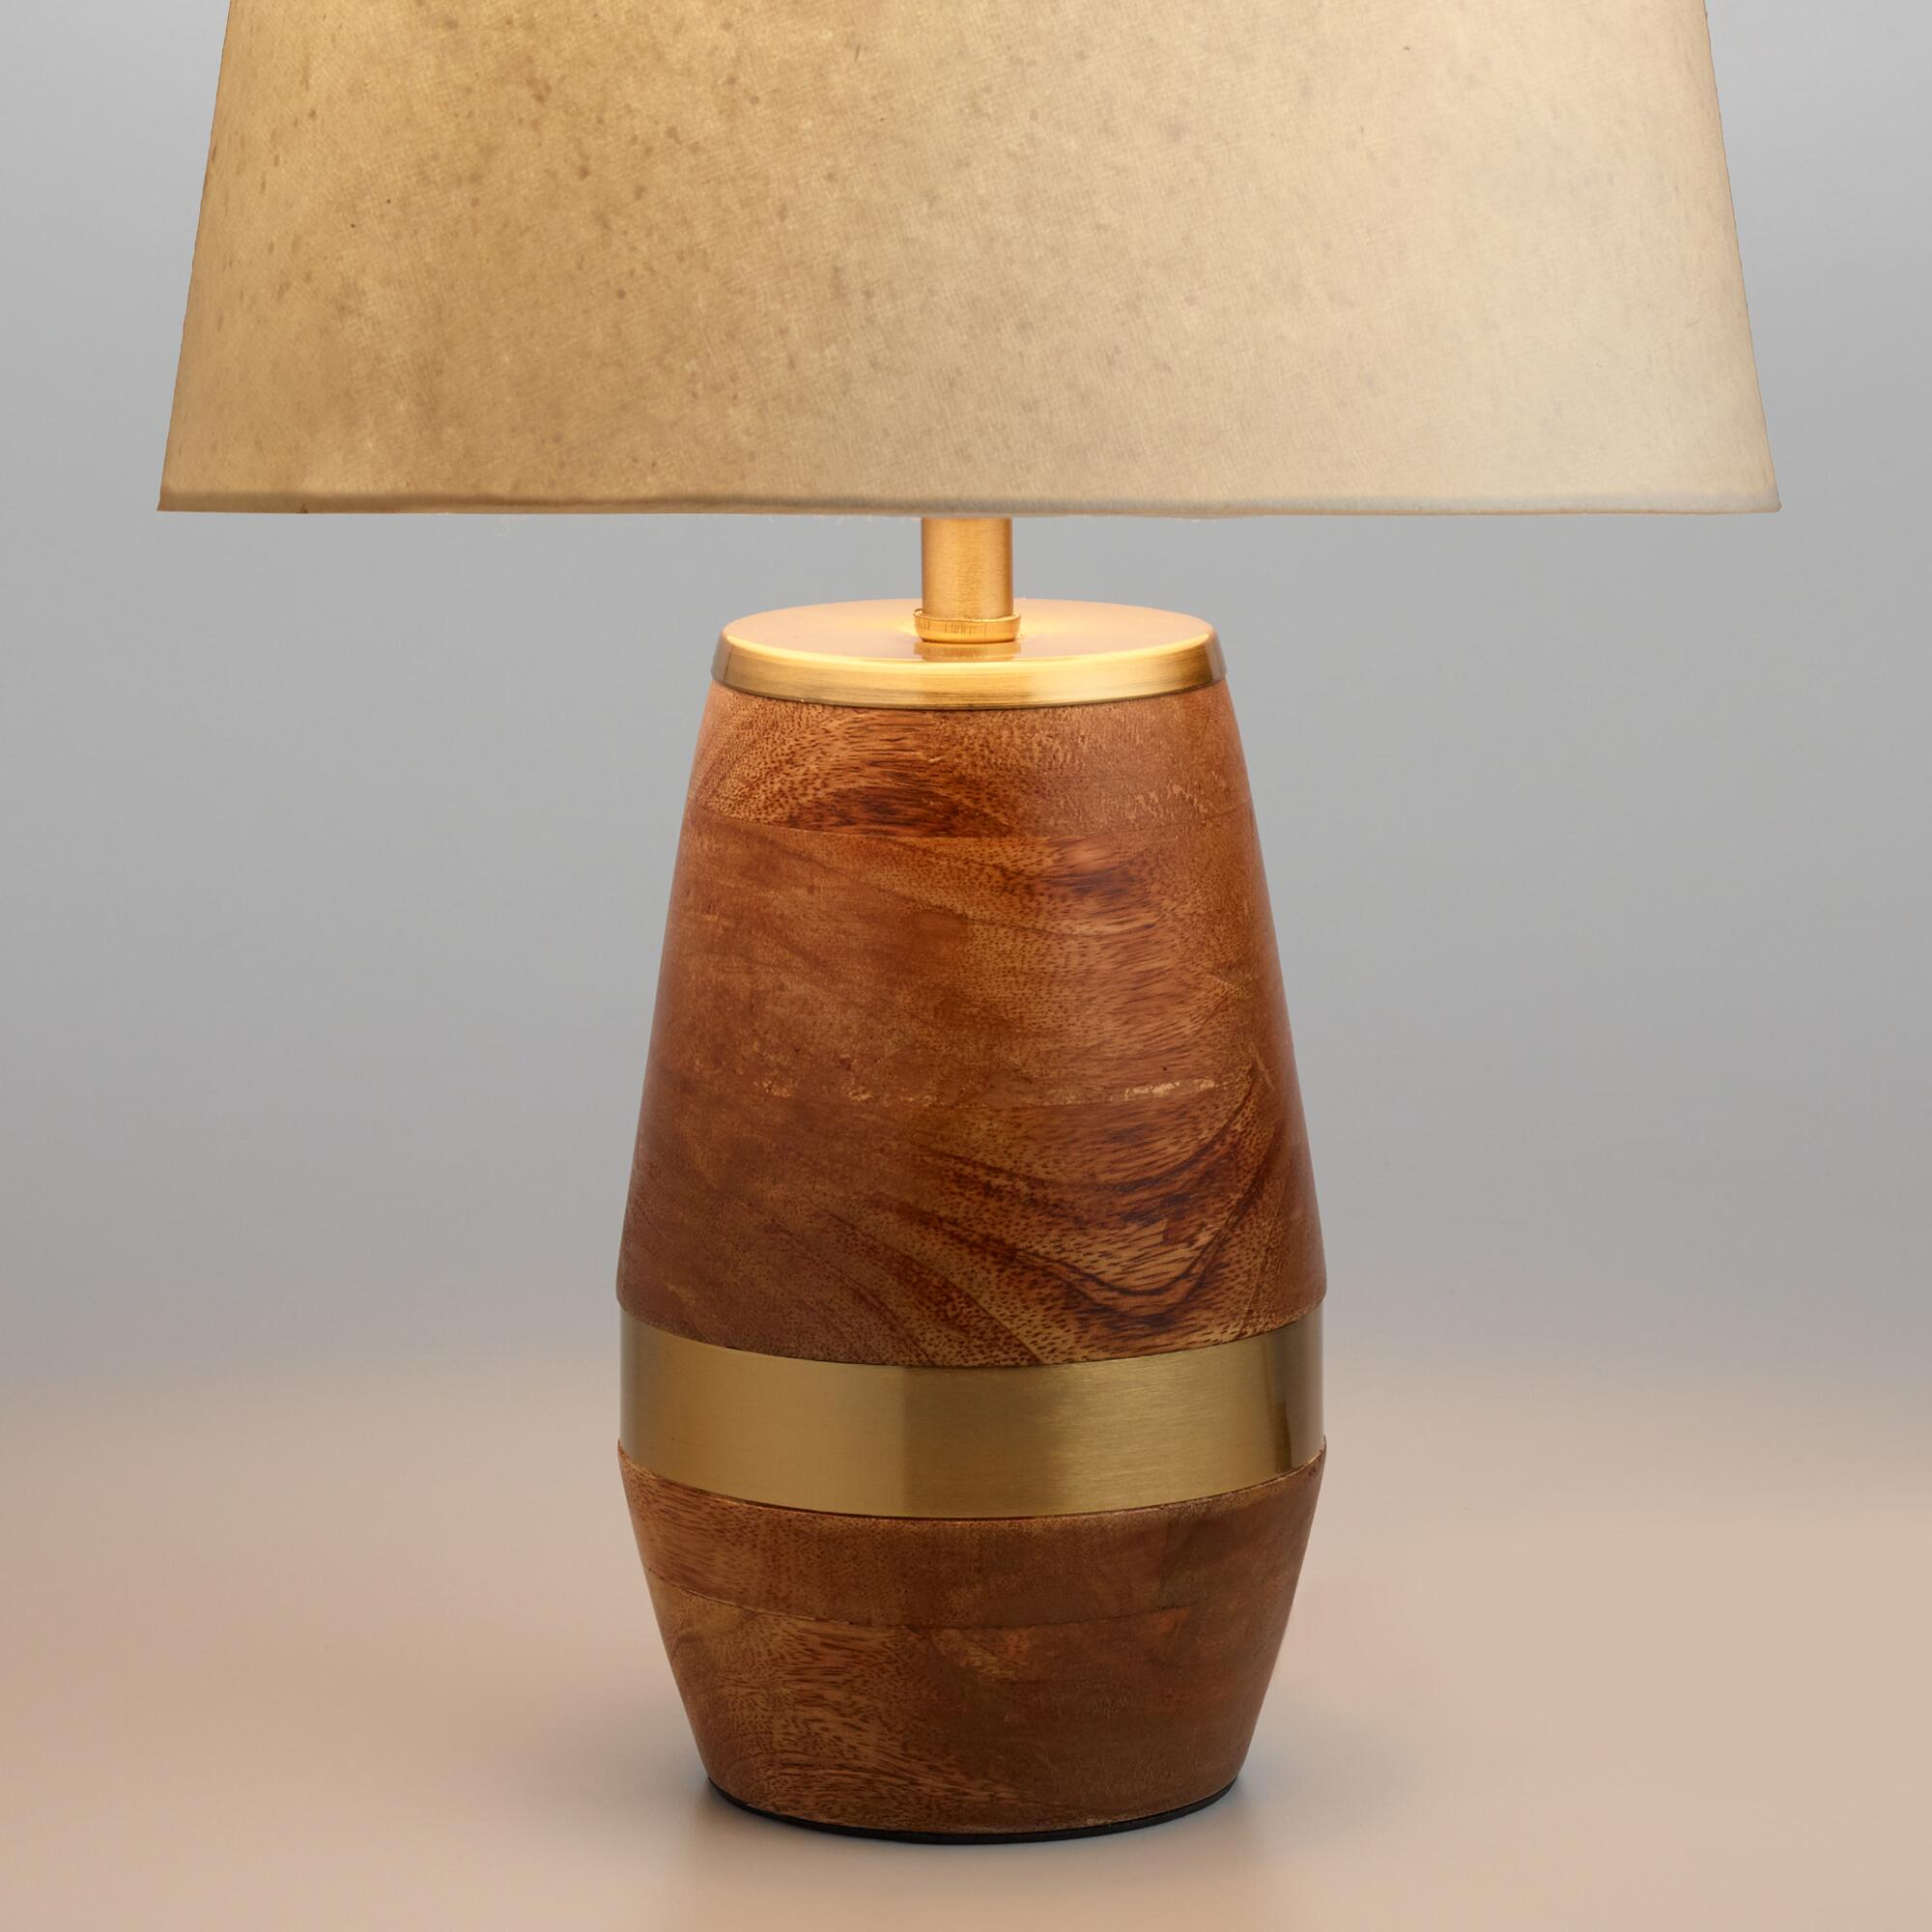 base drummond turn wooden wood pin turned lamp pinterest